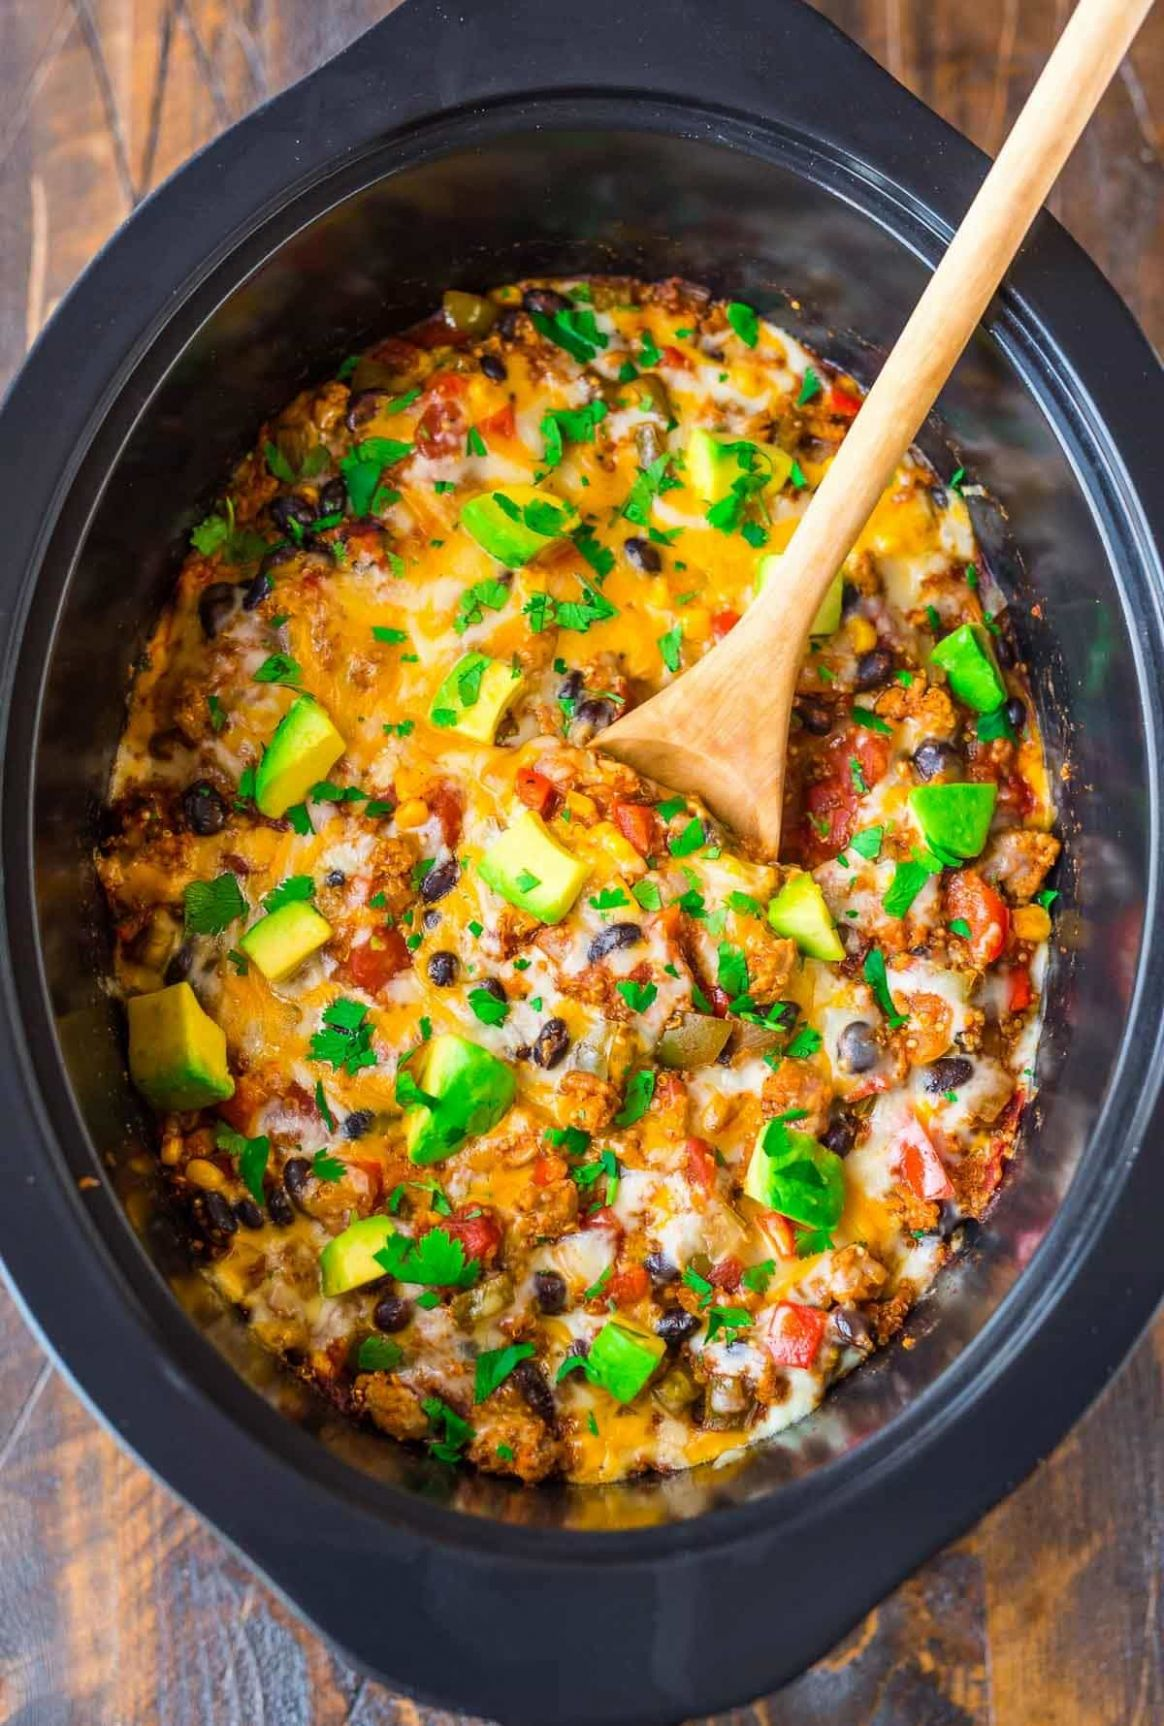 Crock Pot Mexican Casserole - Simple Recipes Slow Cooker